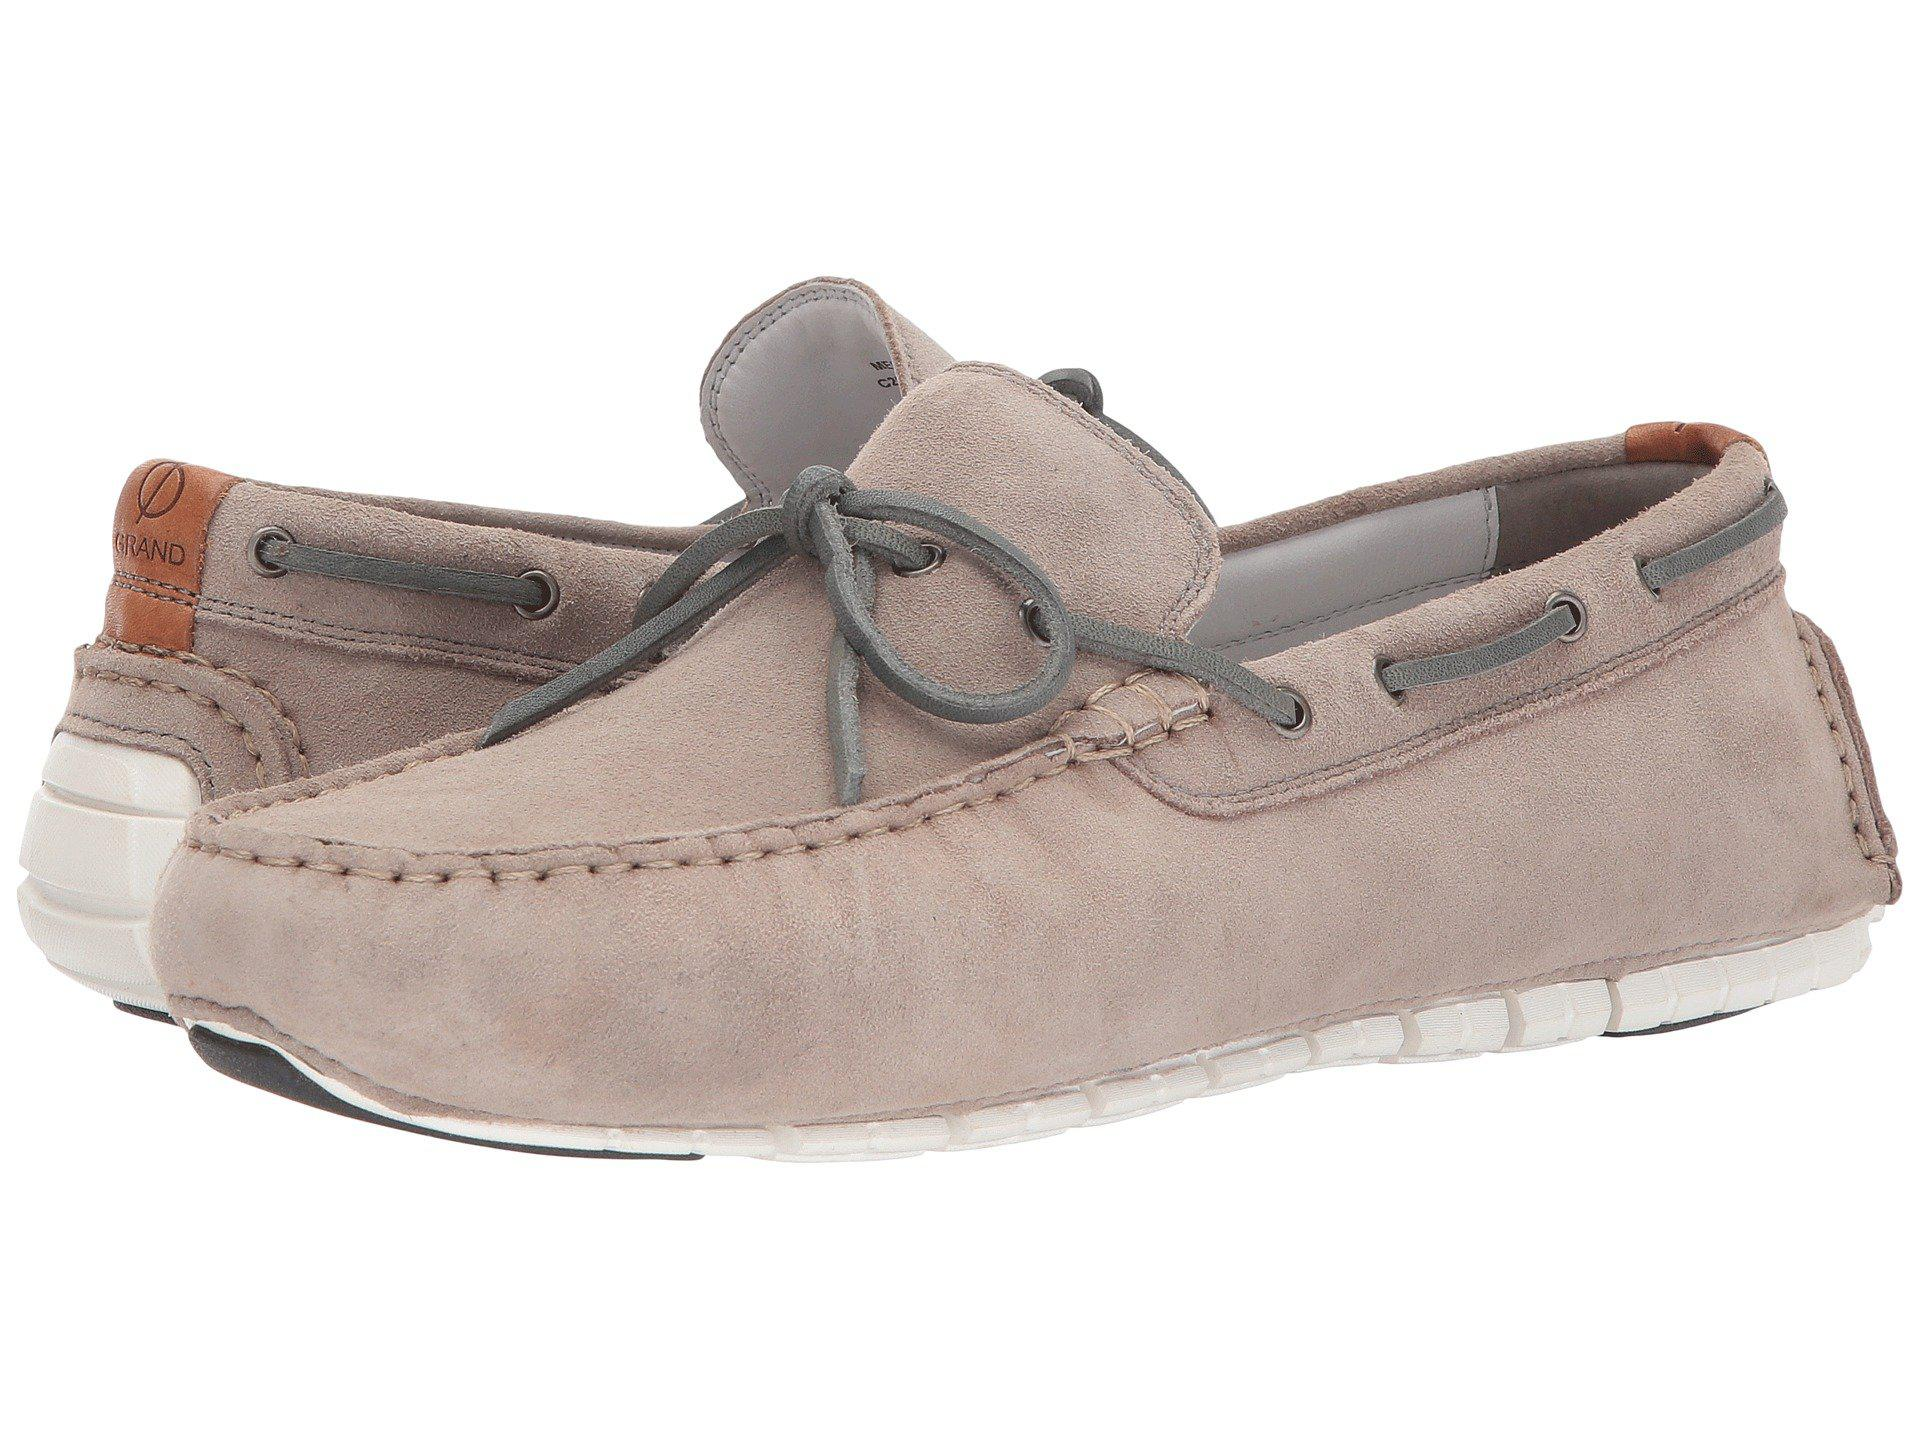 ba5baee0d26 Lyst - Cole Haan Zerogrand Camp Moc Driver in Gray for Men - Save 43%